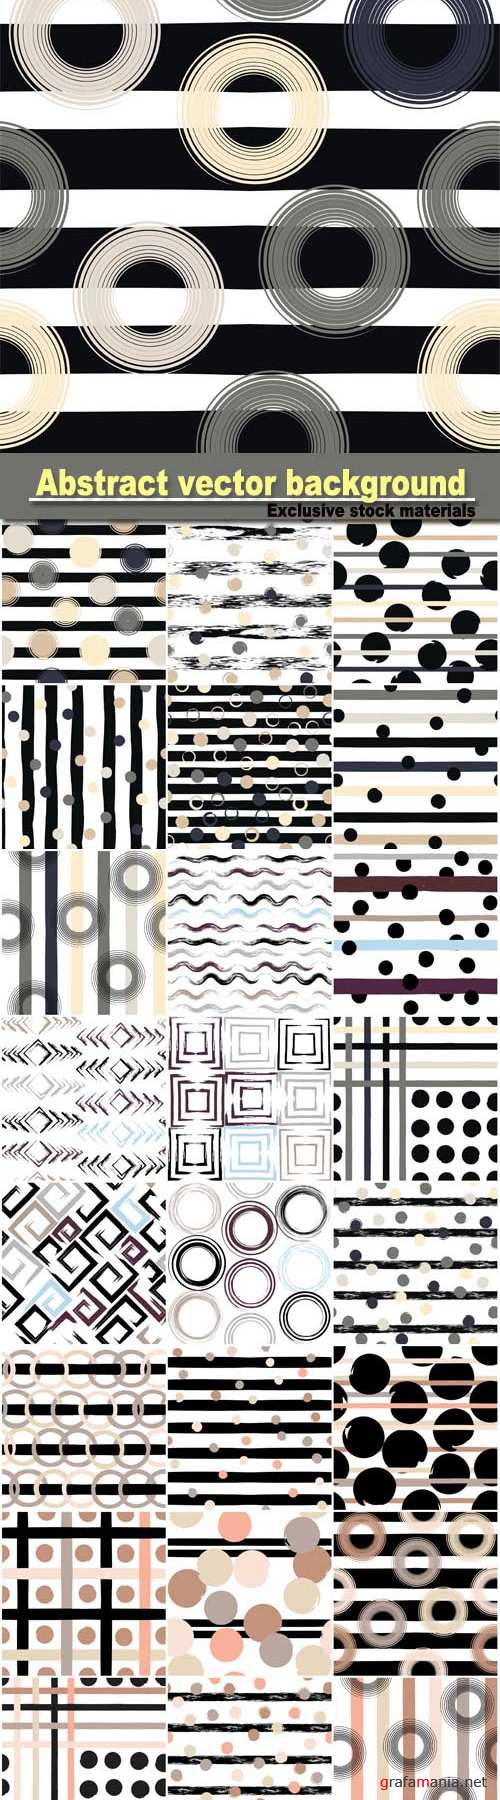 Abstract vector background with circles and squares